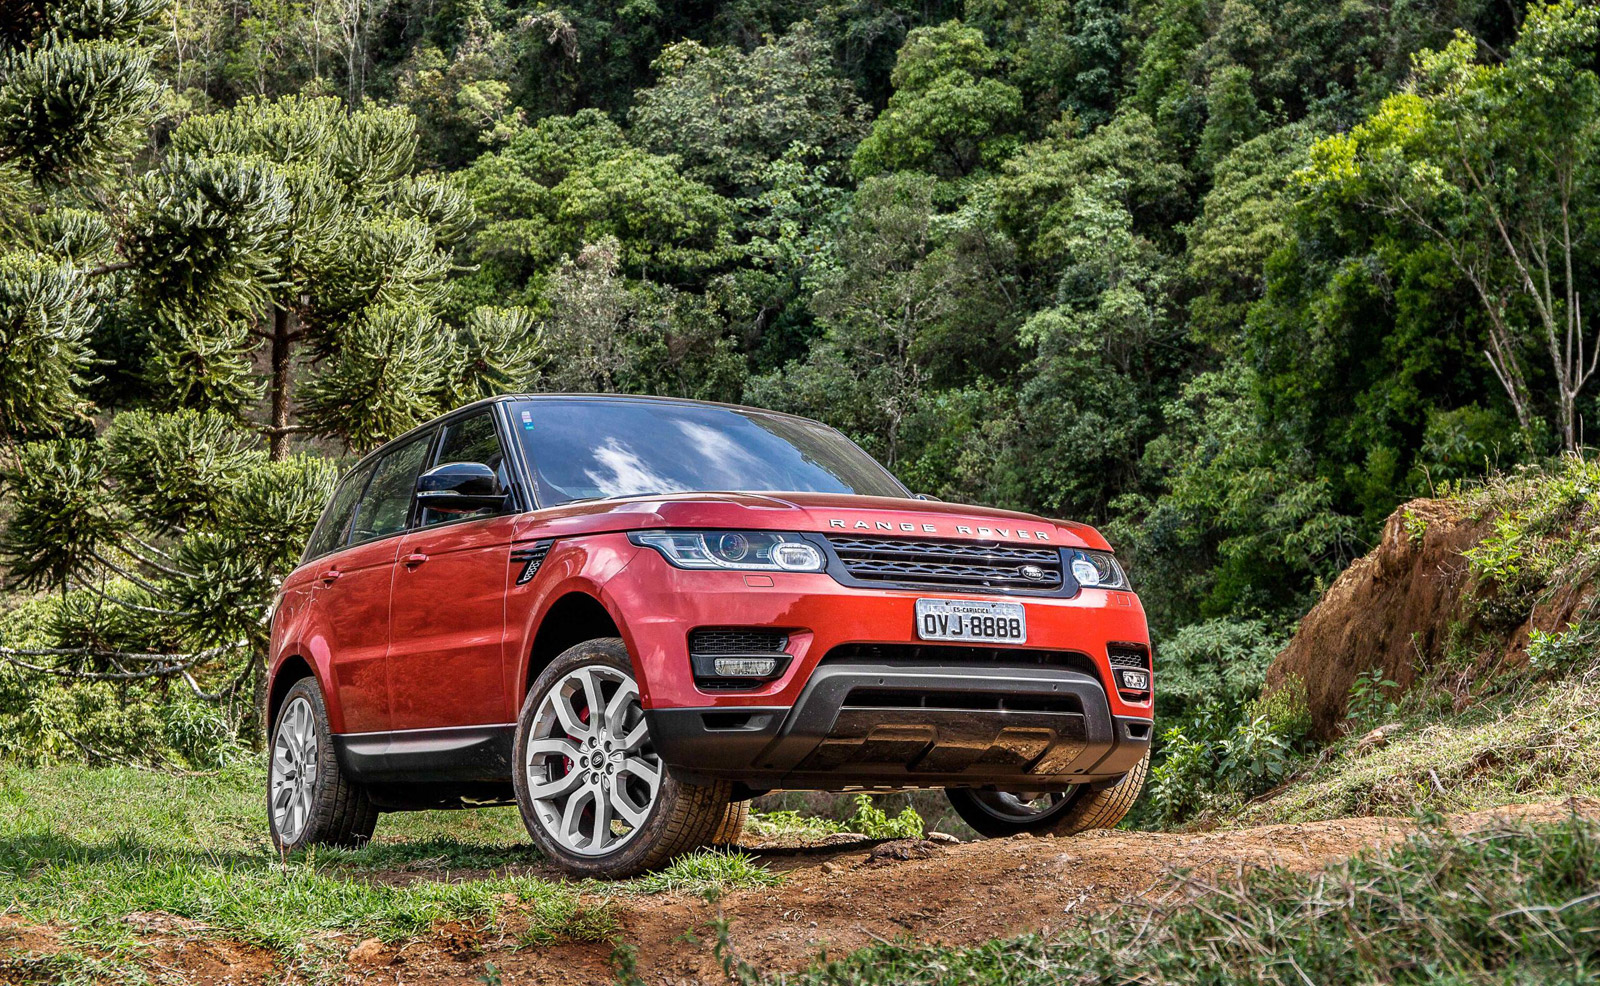 Used Land Rover Range Rover Sport For Sale In Las Vegas >> 2014 Land Rover Range Rover Sport Review, Ratings, Specs ...